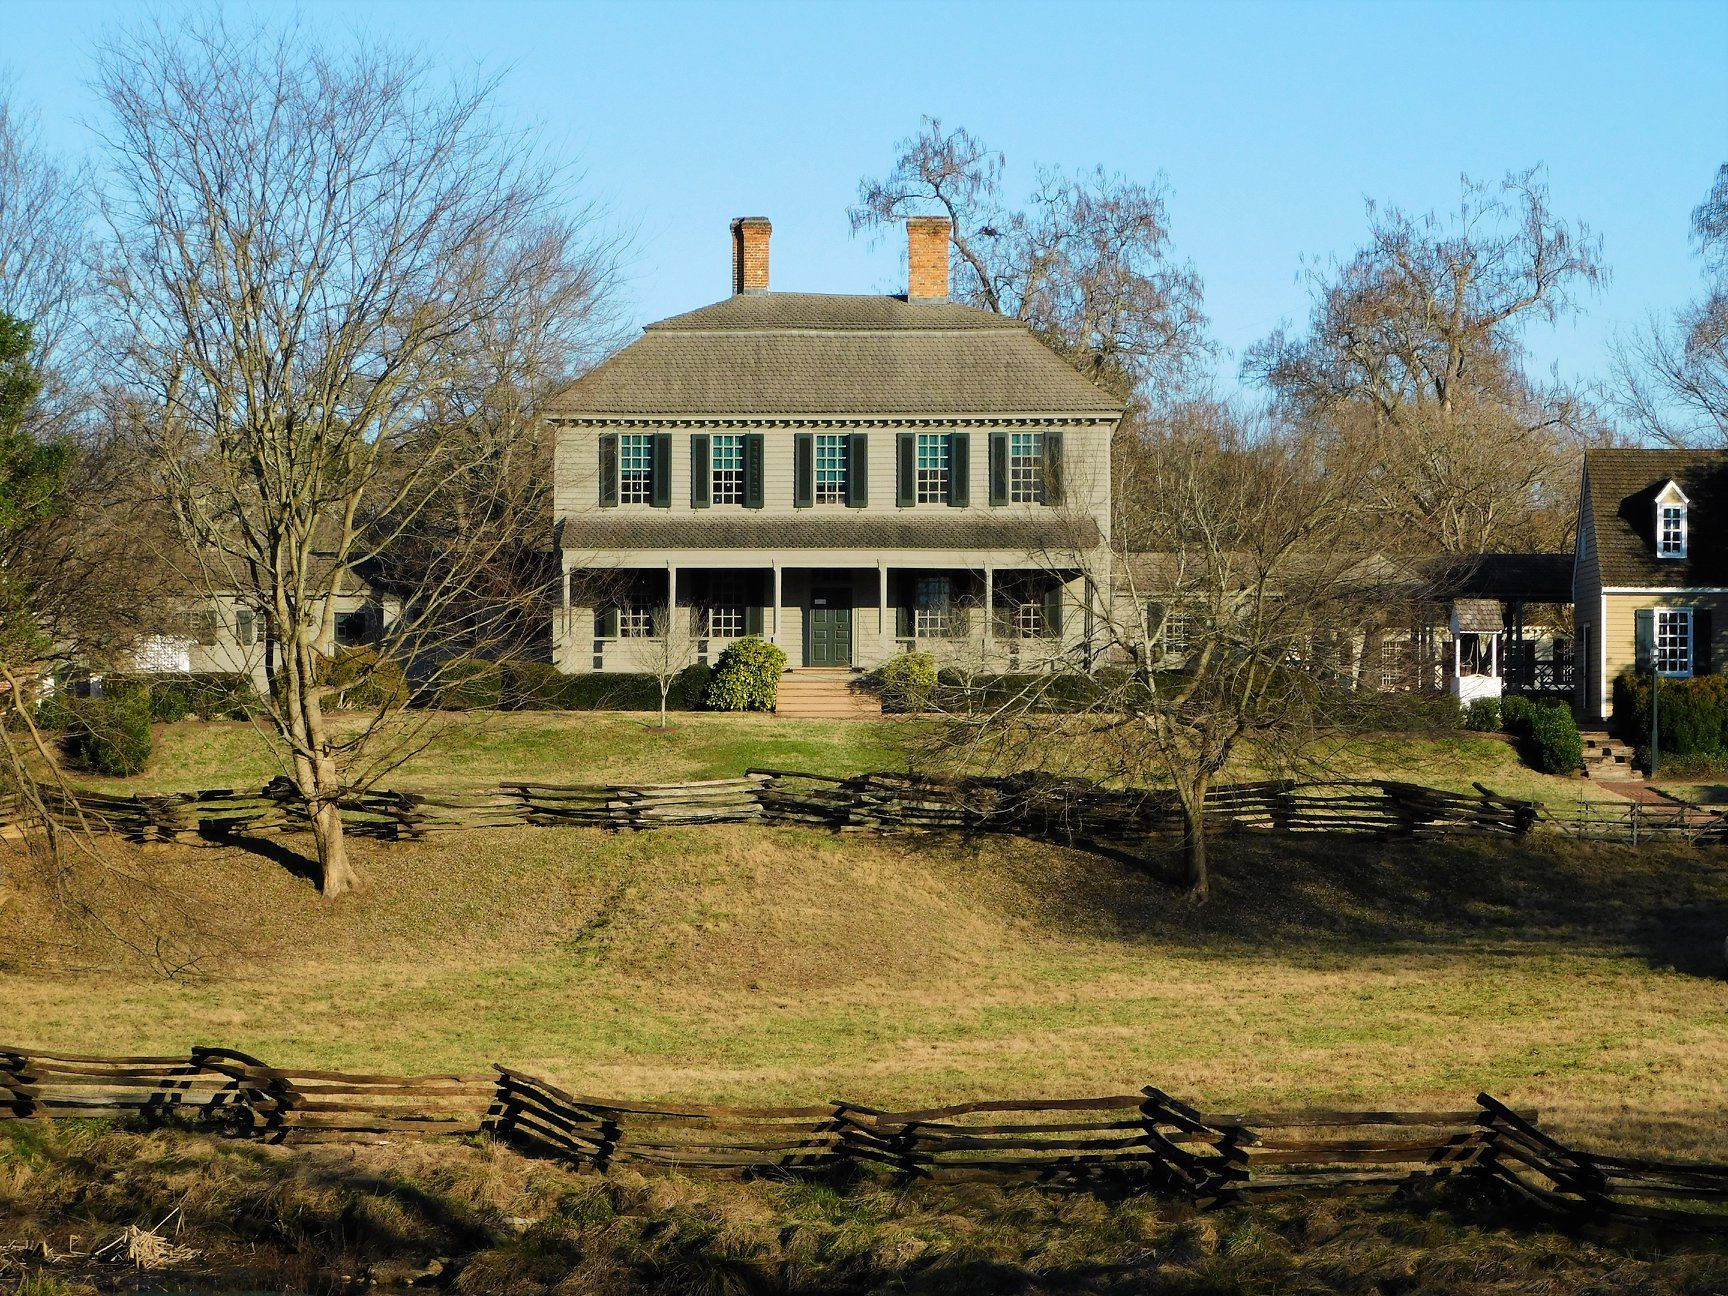 Pin By Justin Fortanascio On Garden Borders Primitive Homes House Styles Old Houses